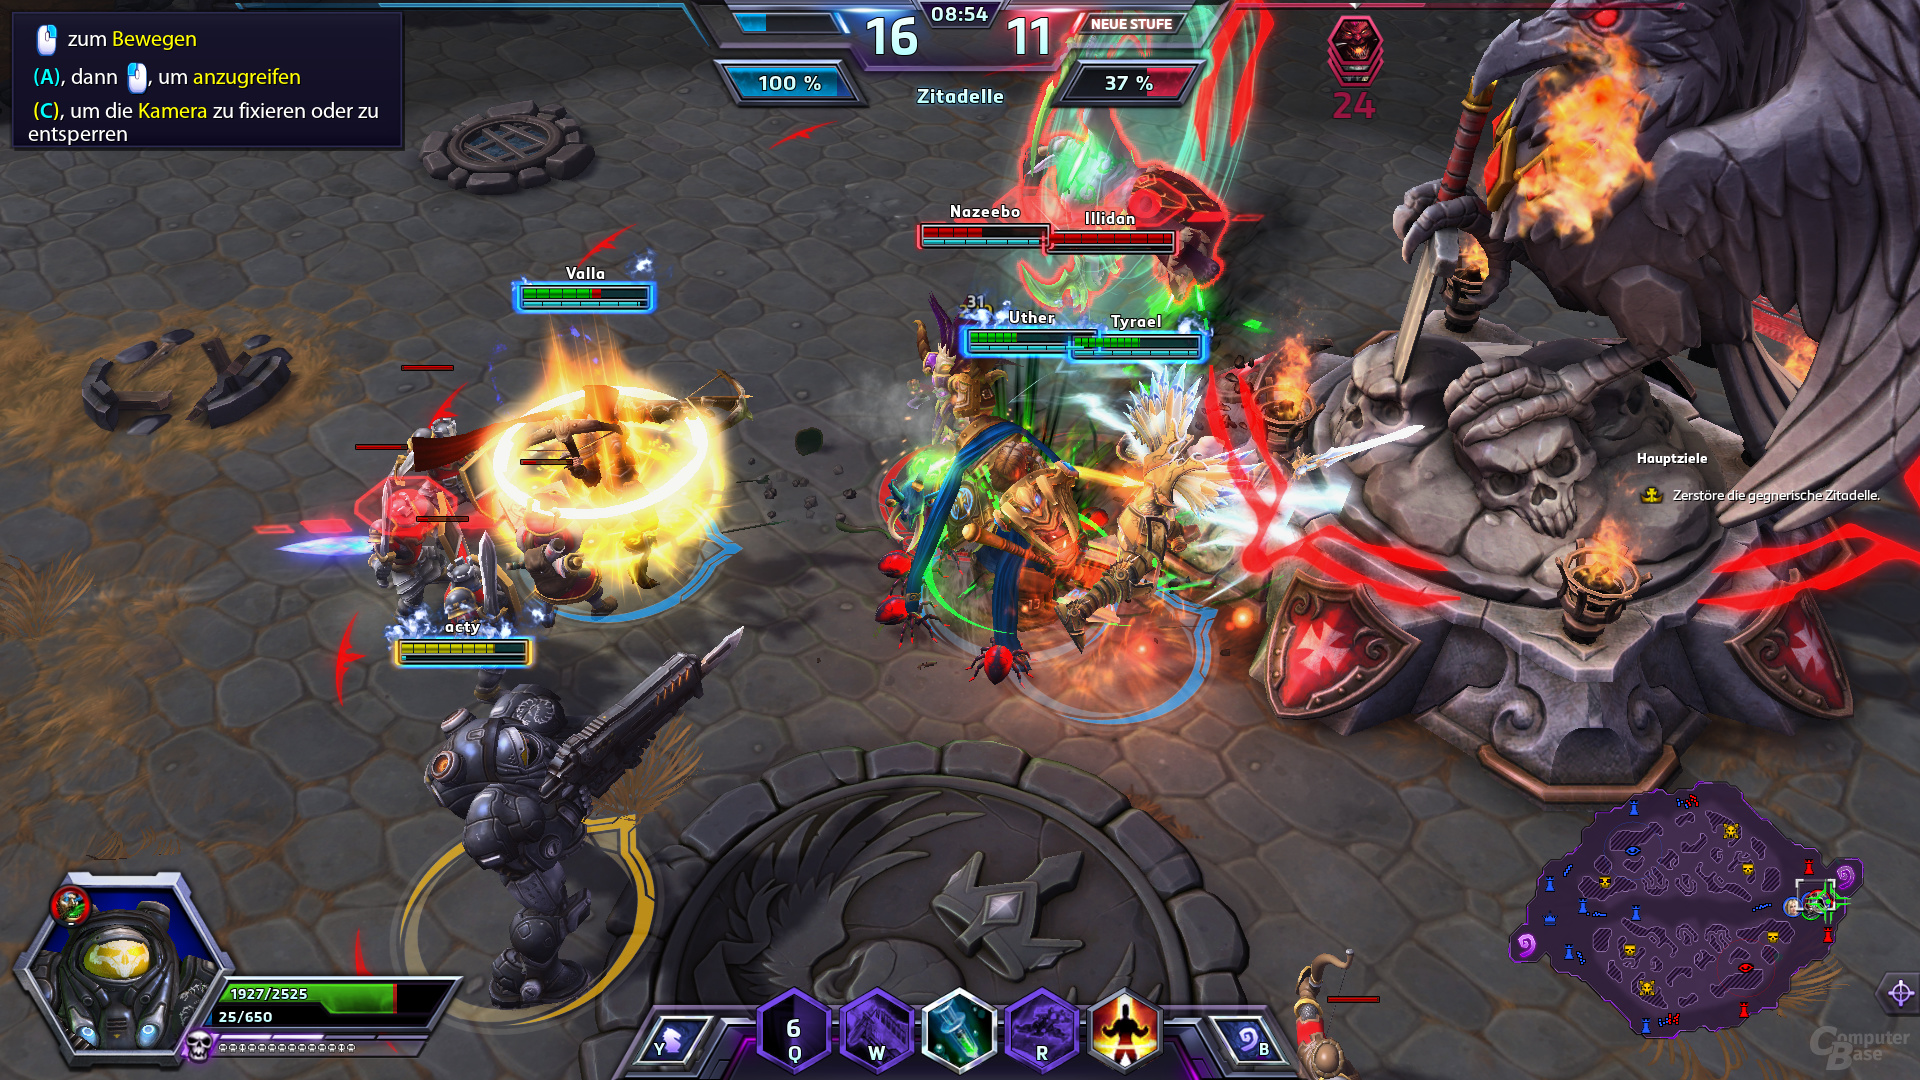 Heroes of the Storm – Zitadelle